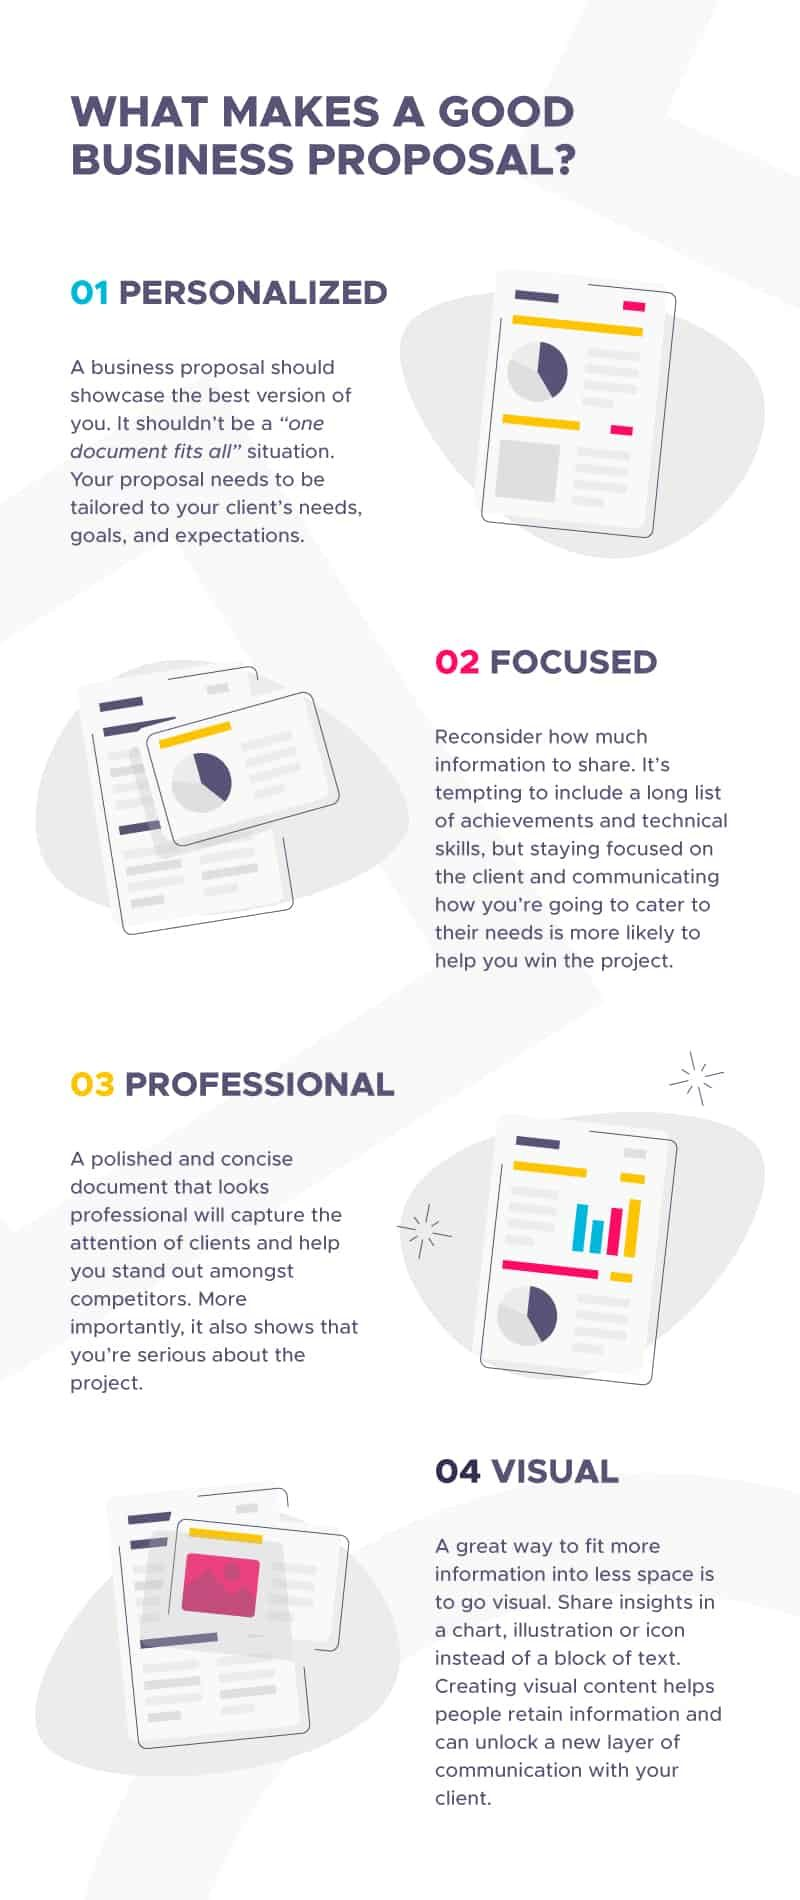 business-proposal-infographic-8421277